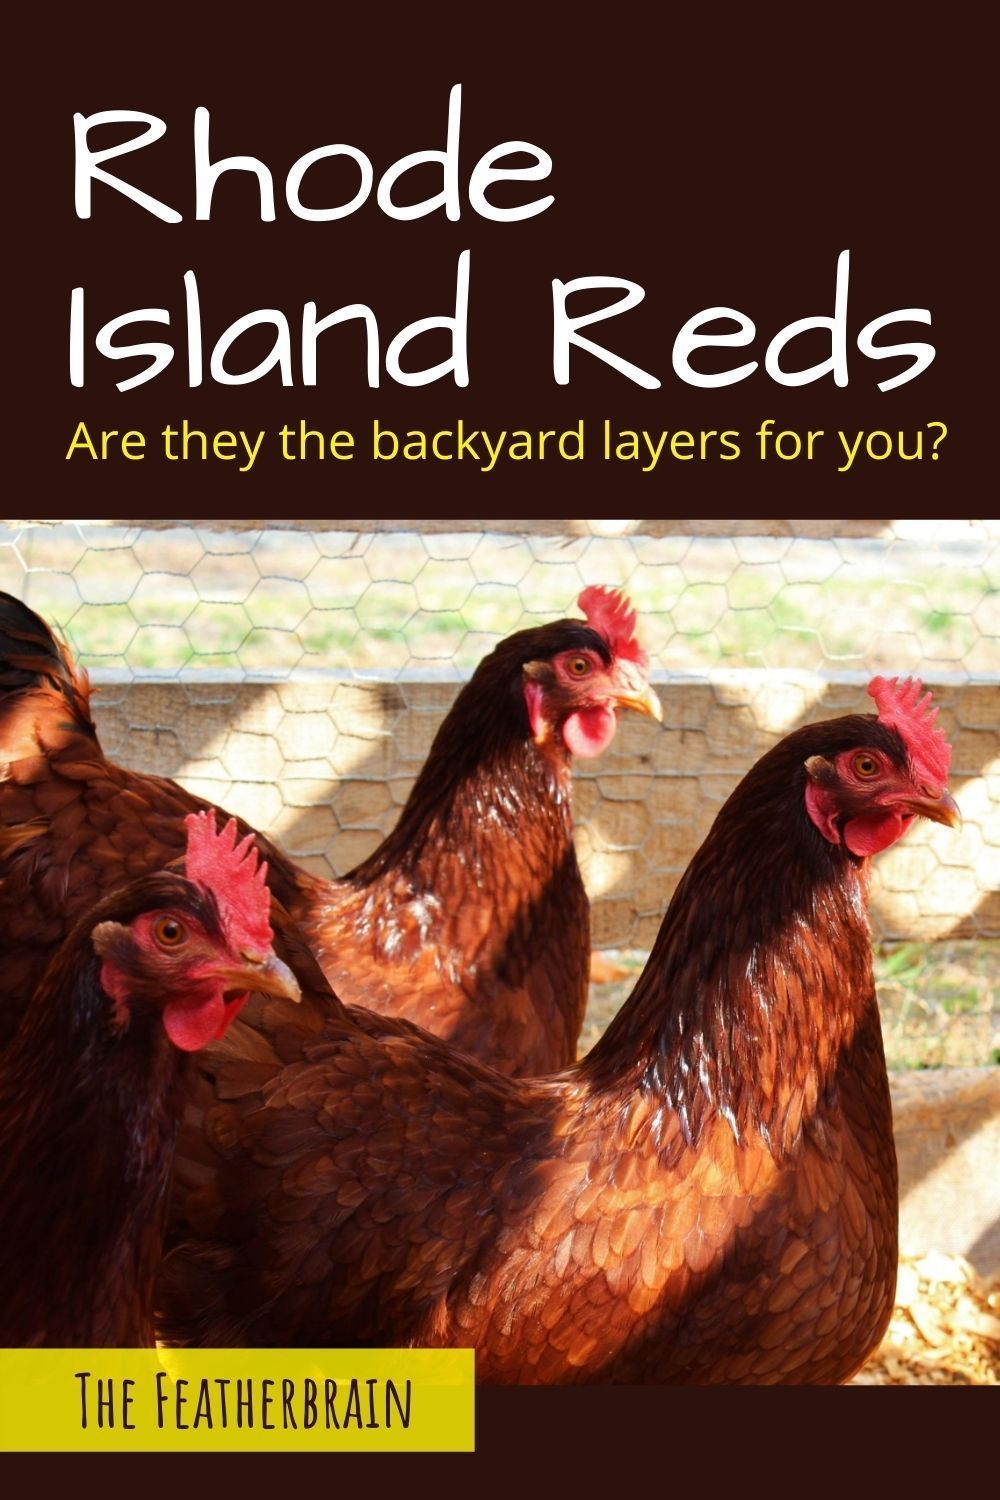 Considering Rhode Island Red chickens? The 19 thin